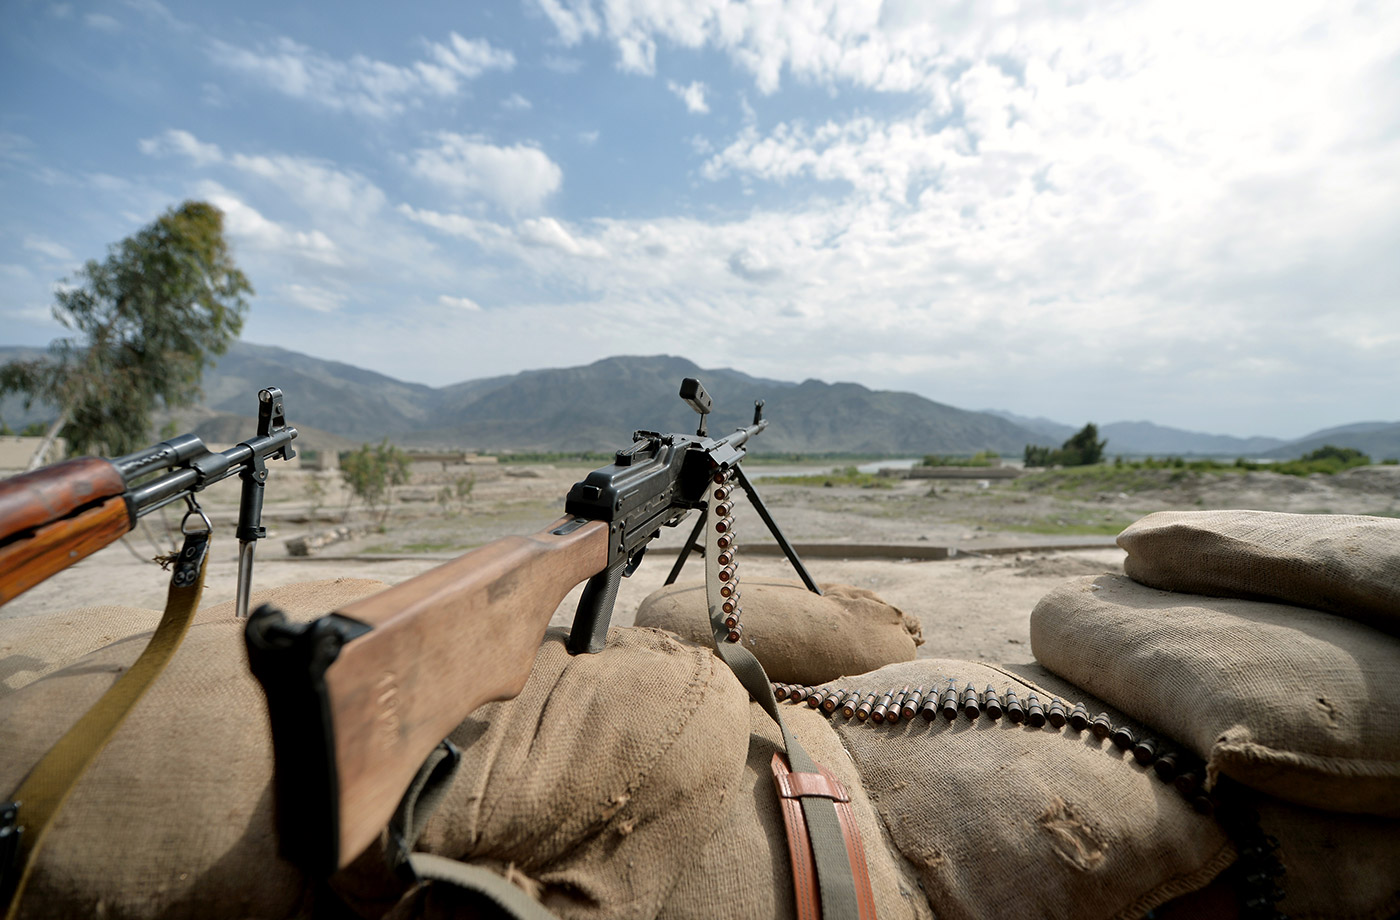 Guns of the Afghan Local Police point towards the Hindu Kush mountains